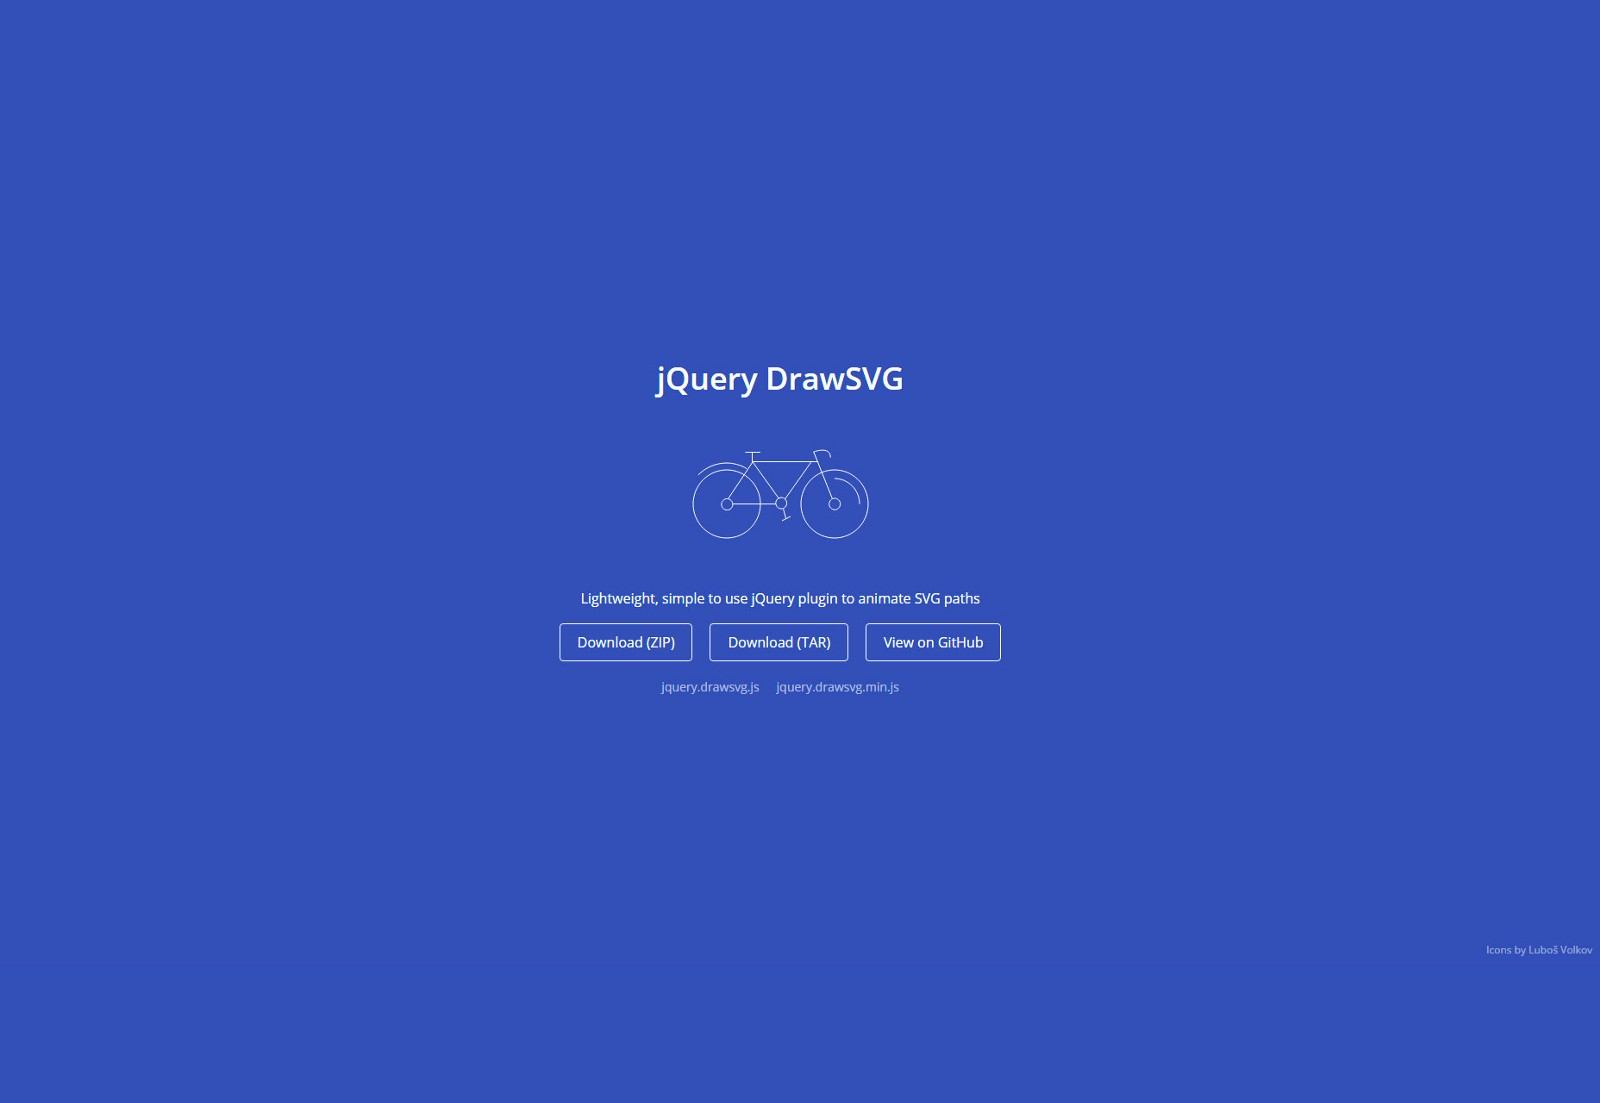 Jquery plugins to work with data presentation and grid layout - A Lightweight And Simple To Use Jquery Plugin That Allows You To Animate Svg Paths You Can Control Duration Stagger Easing Reverse Animation